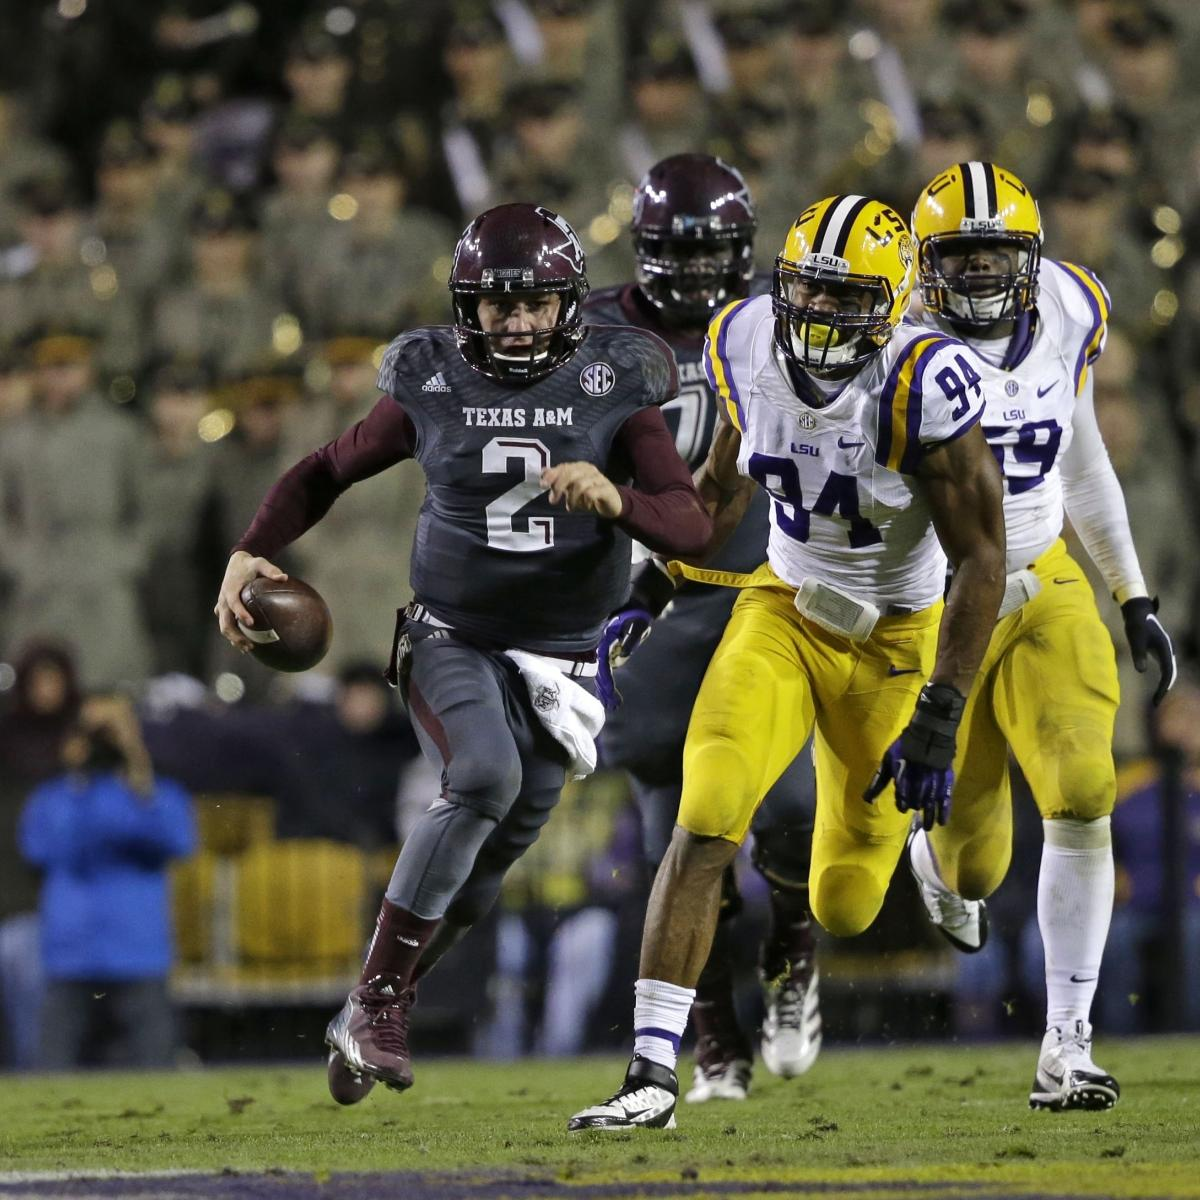 LSU Tigers vs. Texas A&M Aggies: Betting Odds, Analysis ...